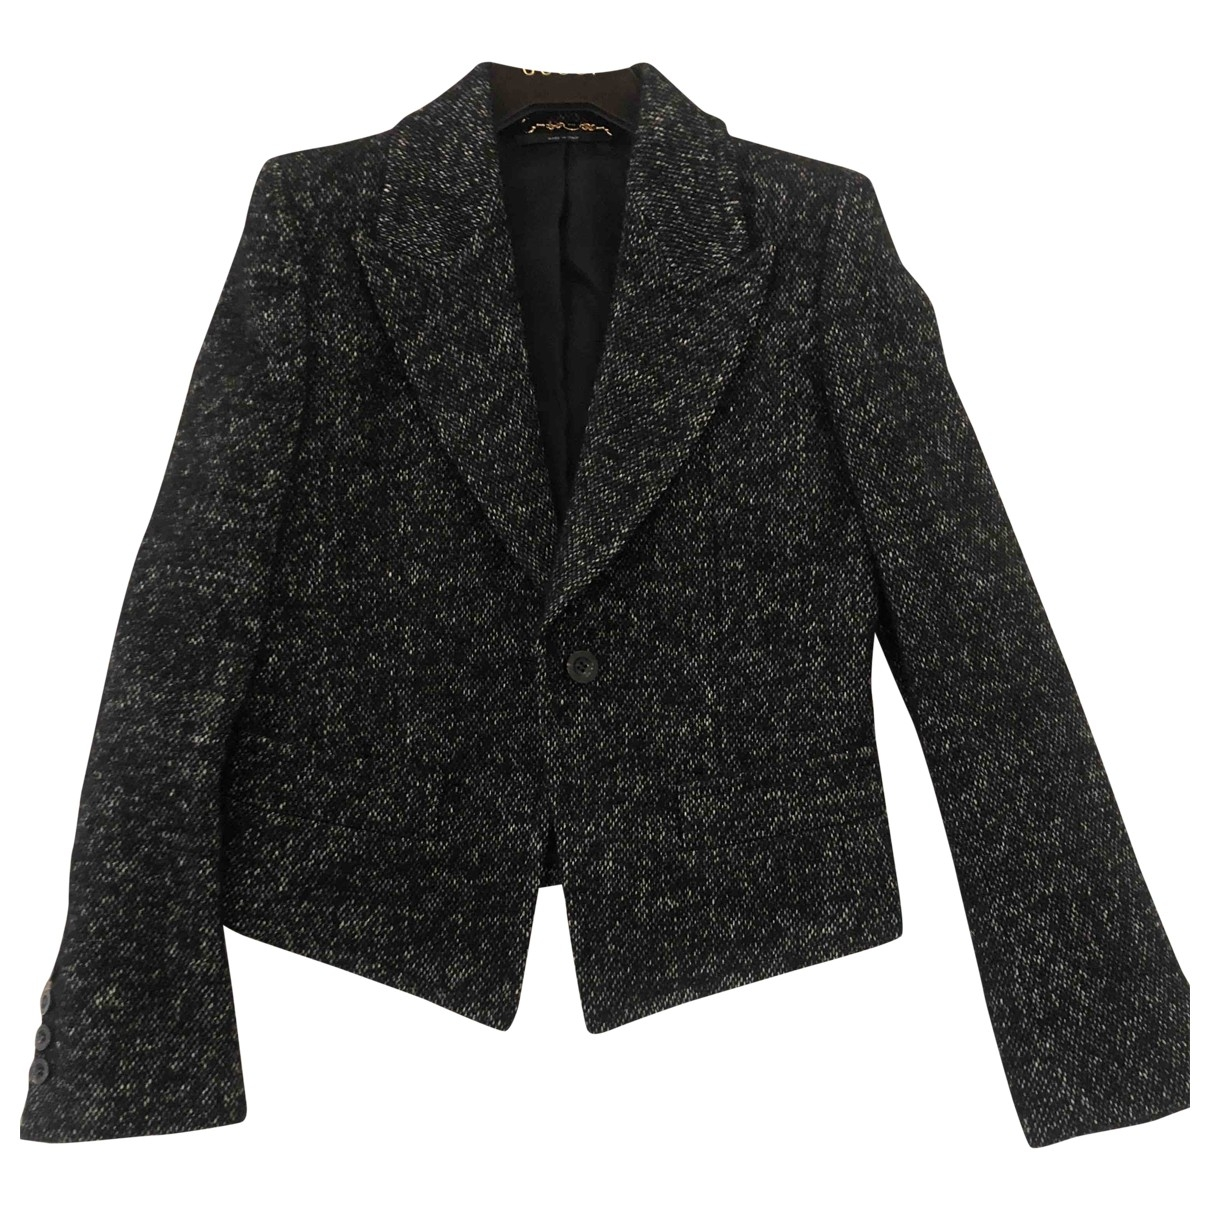 Gucci \N Jacke in  Anthrazit Wolle